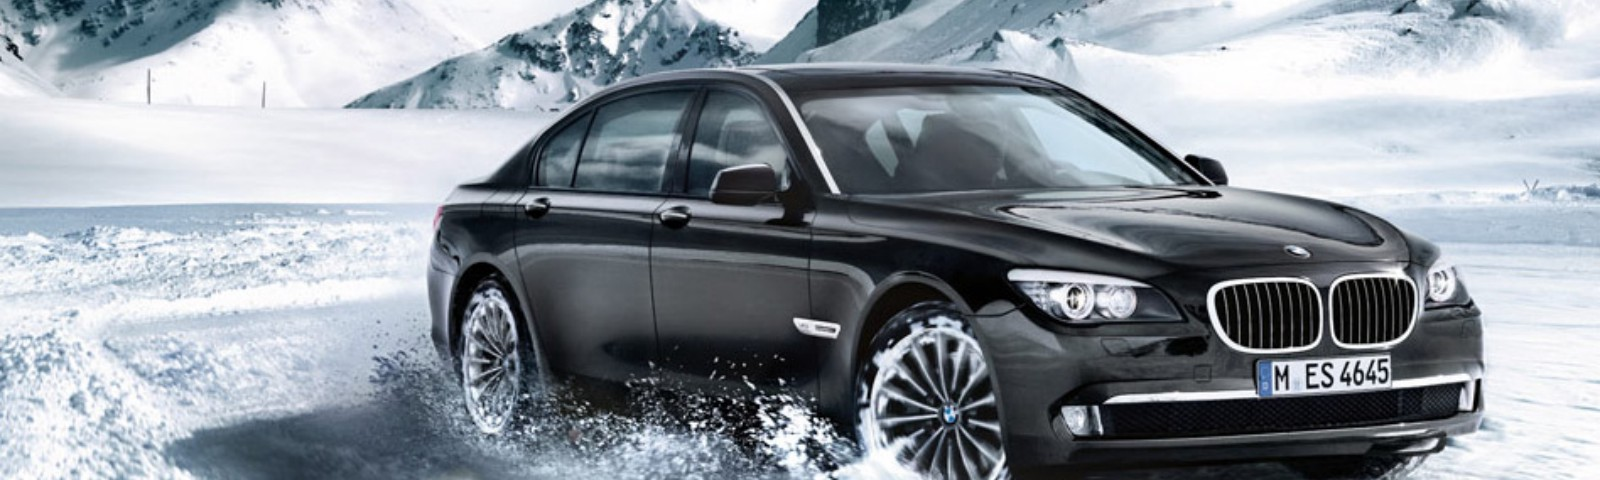 xDrive equipped BMW